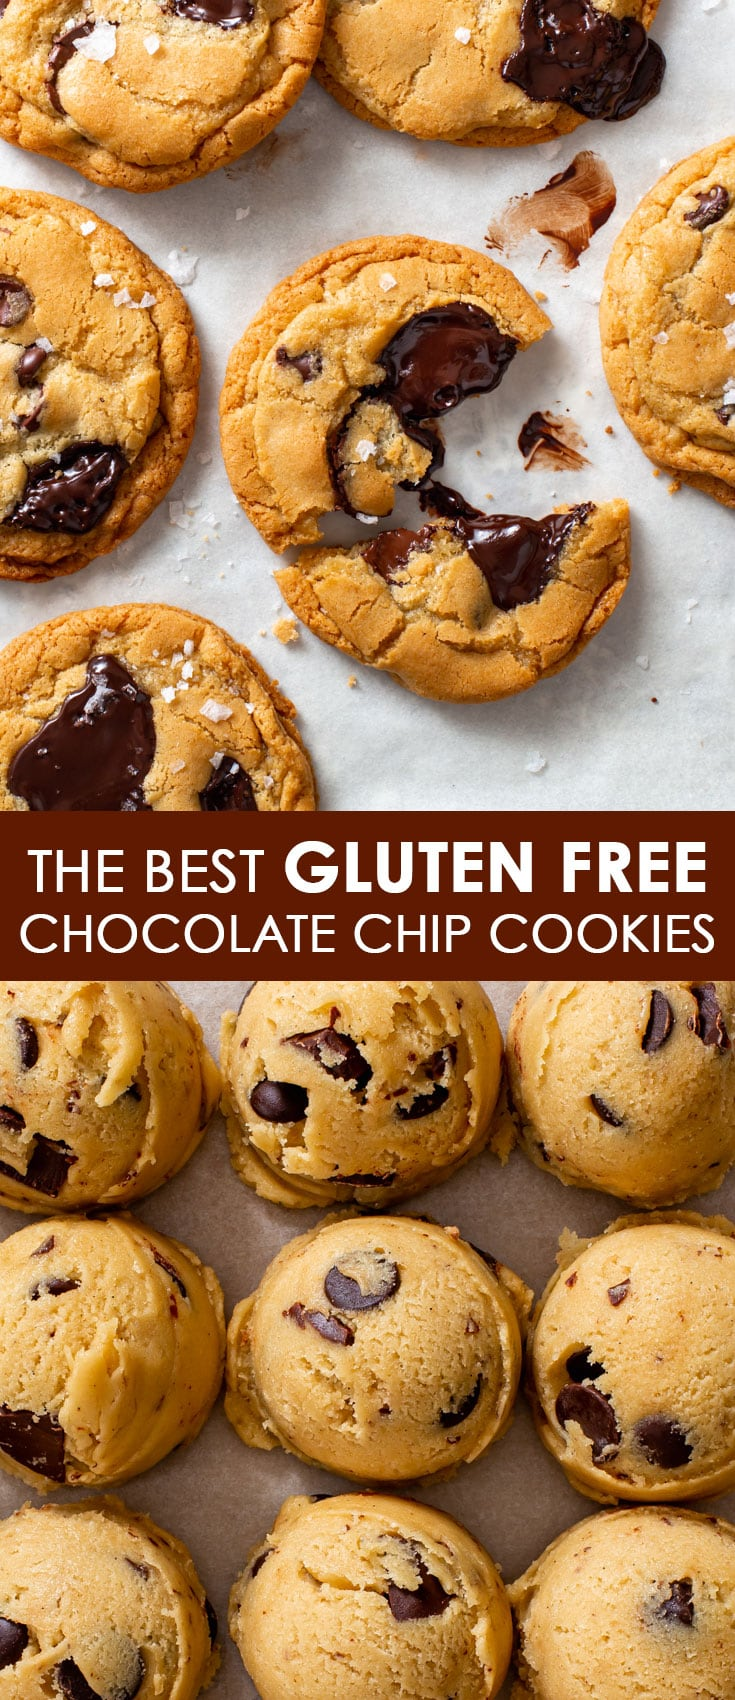 Pinterest image for gluten free chocolate chip cookies.